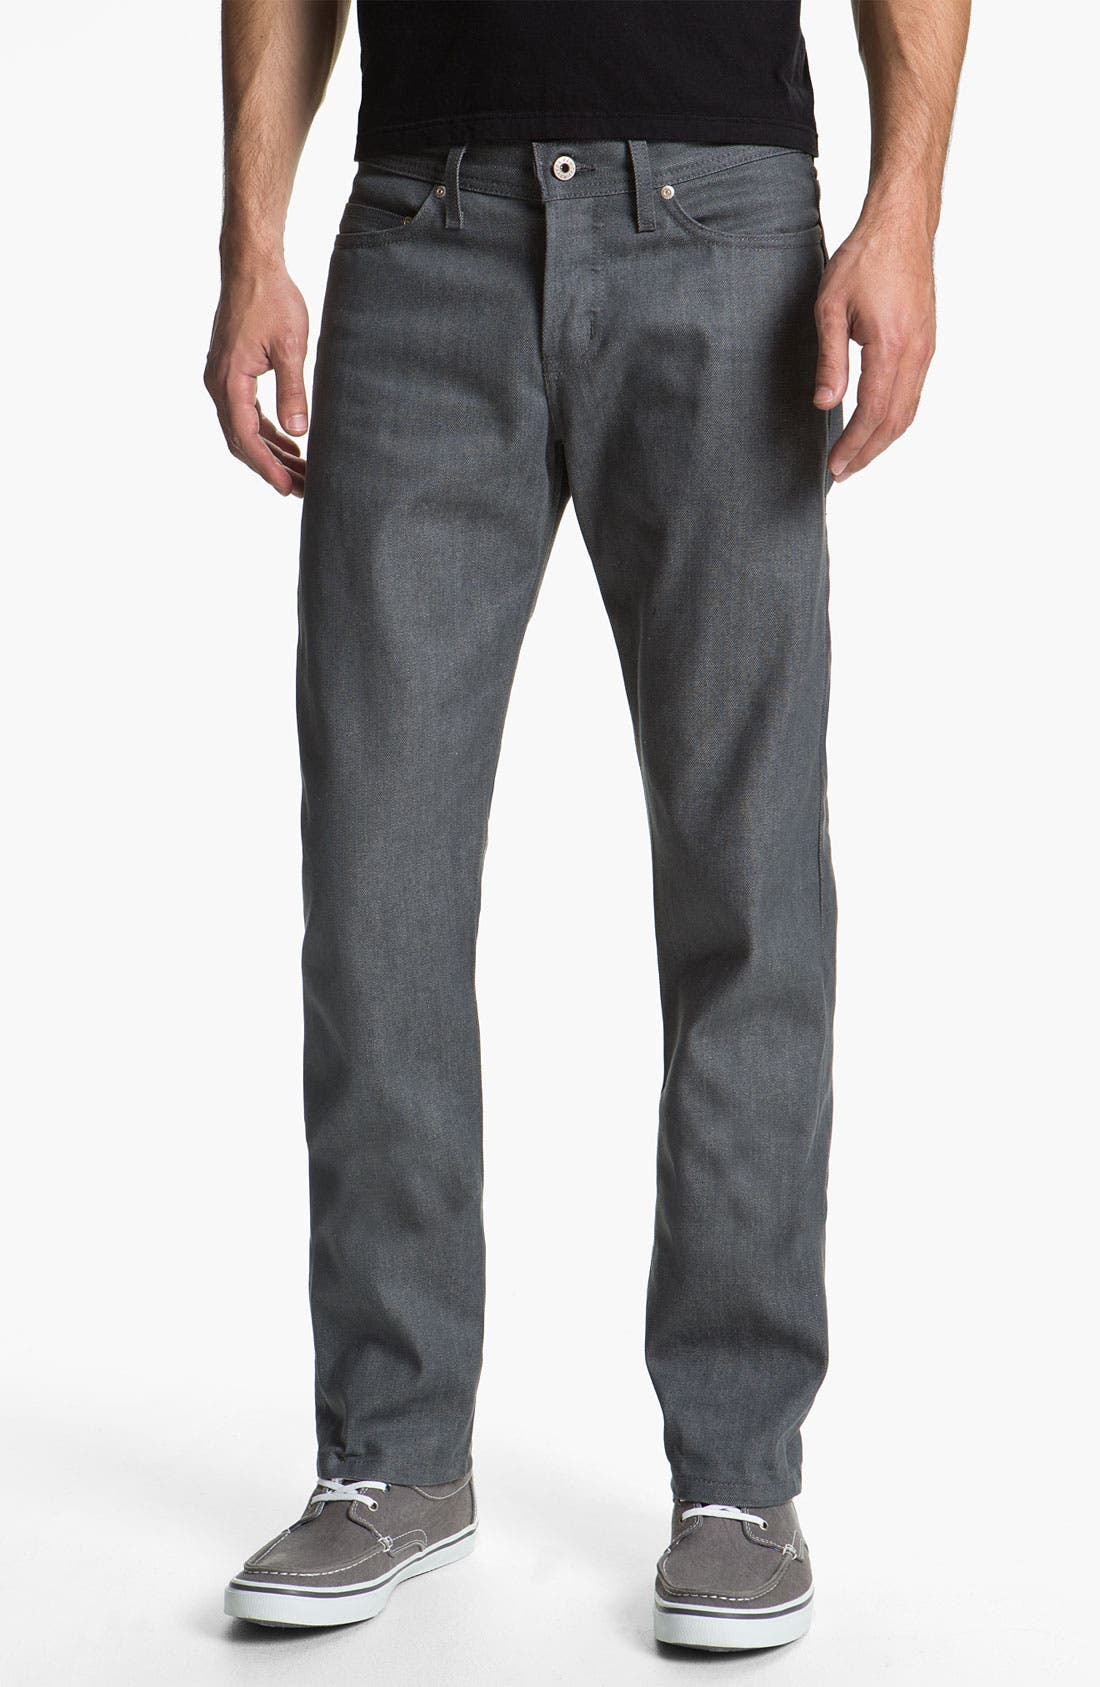 Naked & Famous Denim Weird Guy Slim Fit Selvedge Jeans (Grey)